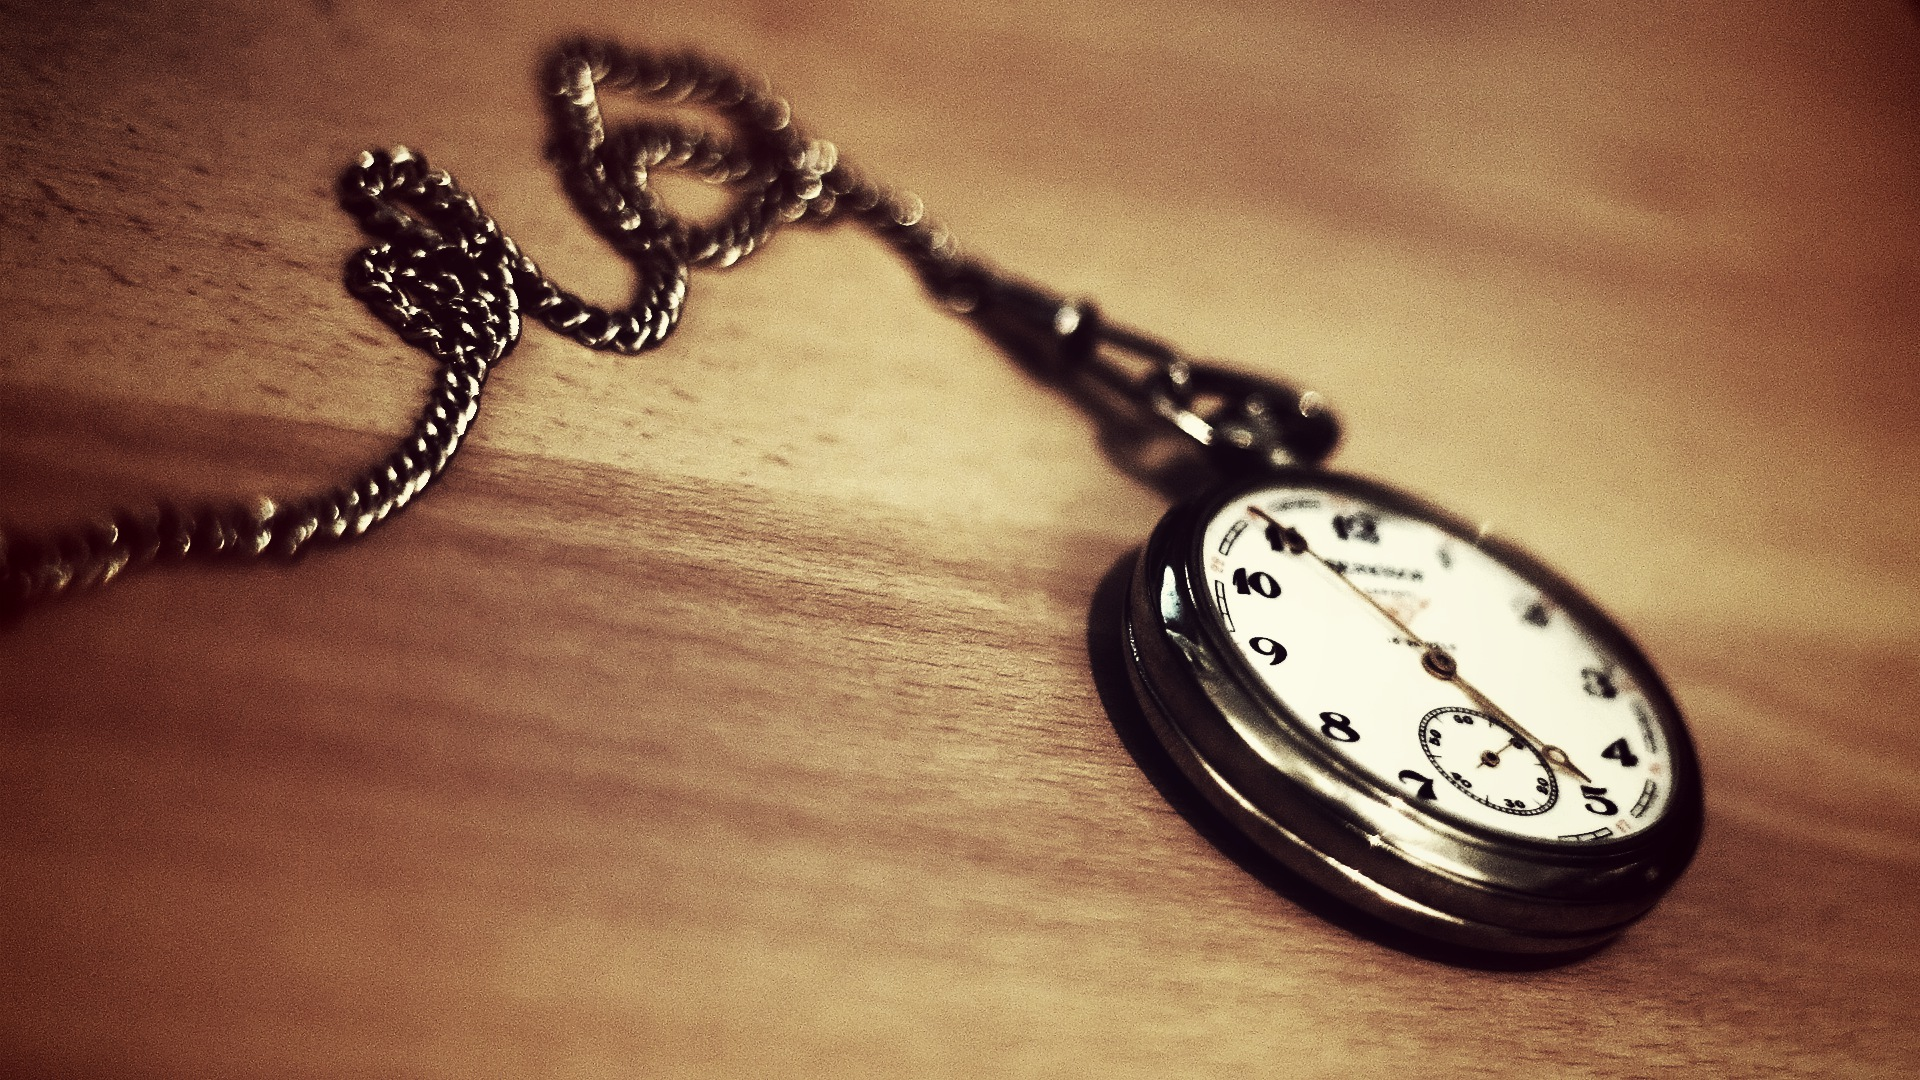 Download-Time-Which-Will-Always-Keep-You-On-Time-wallpaper-wp3404919